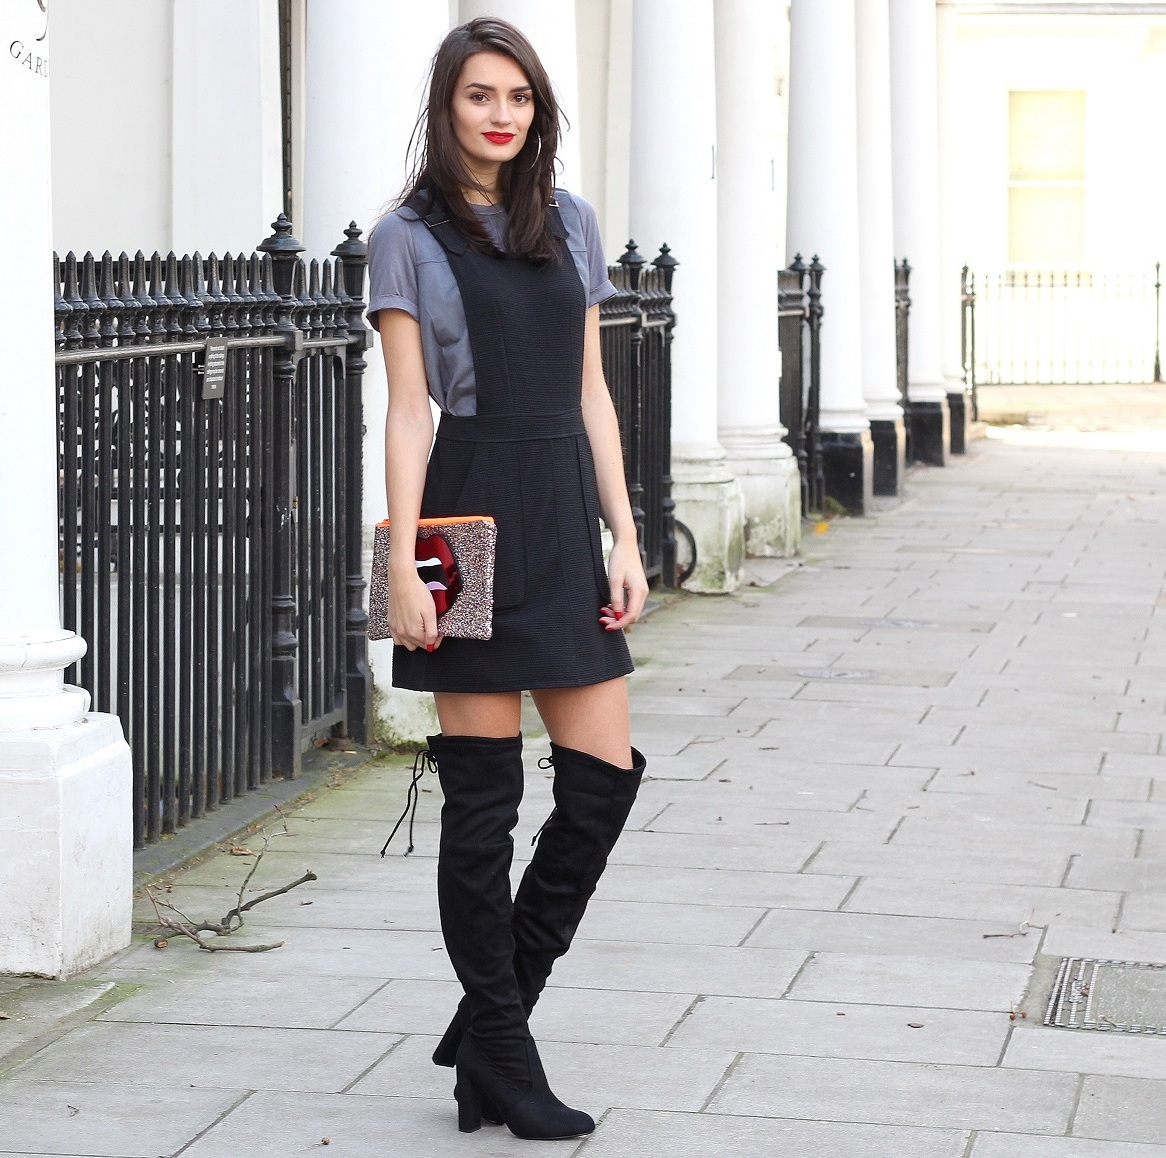 peexo fashion blogger wearing black pinfore and knee high boots